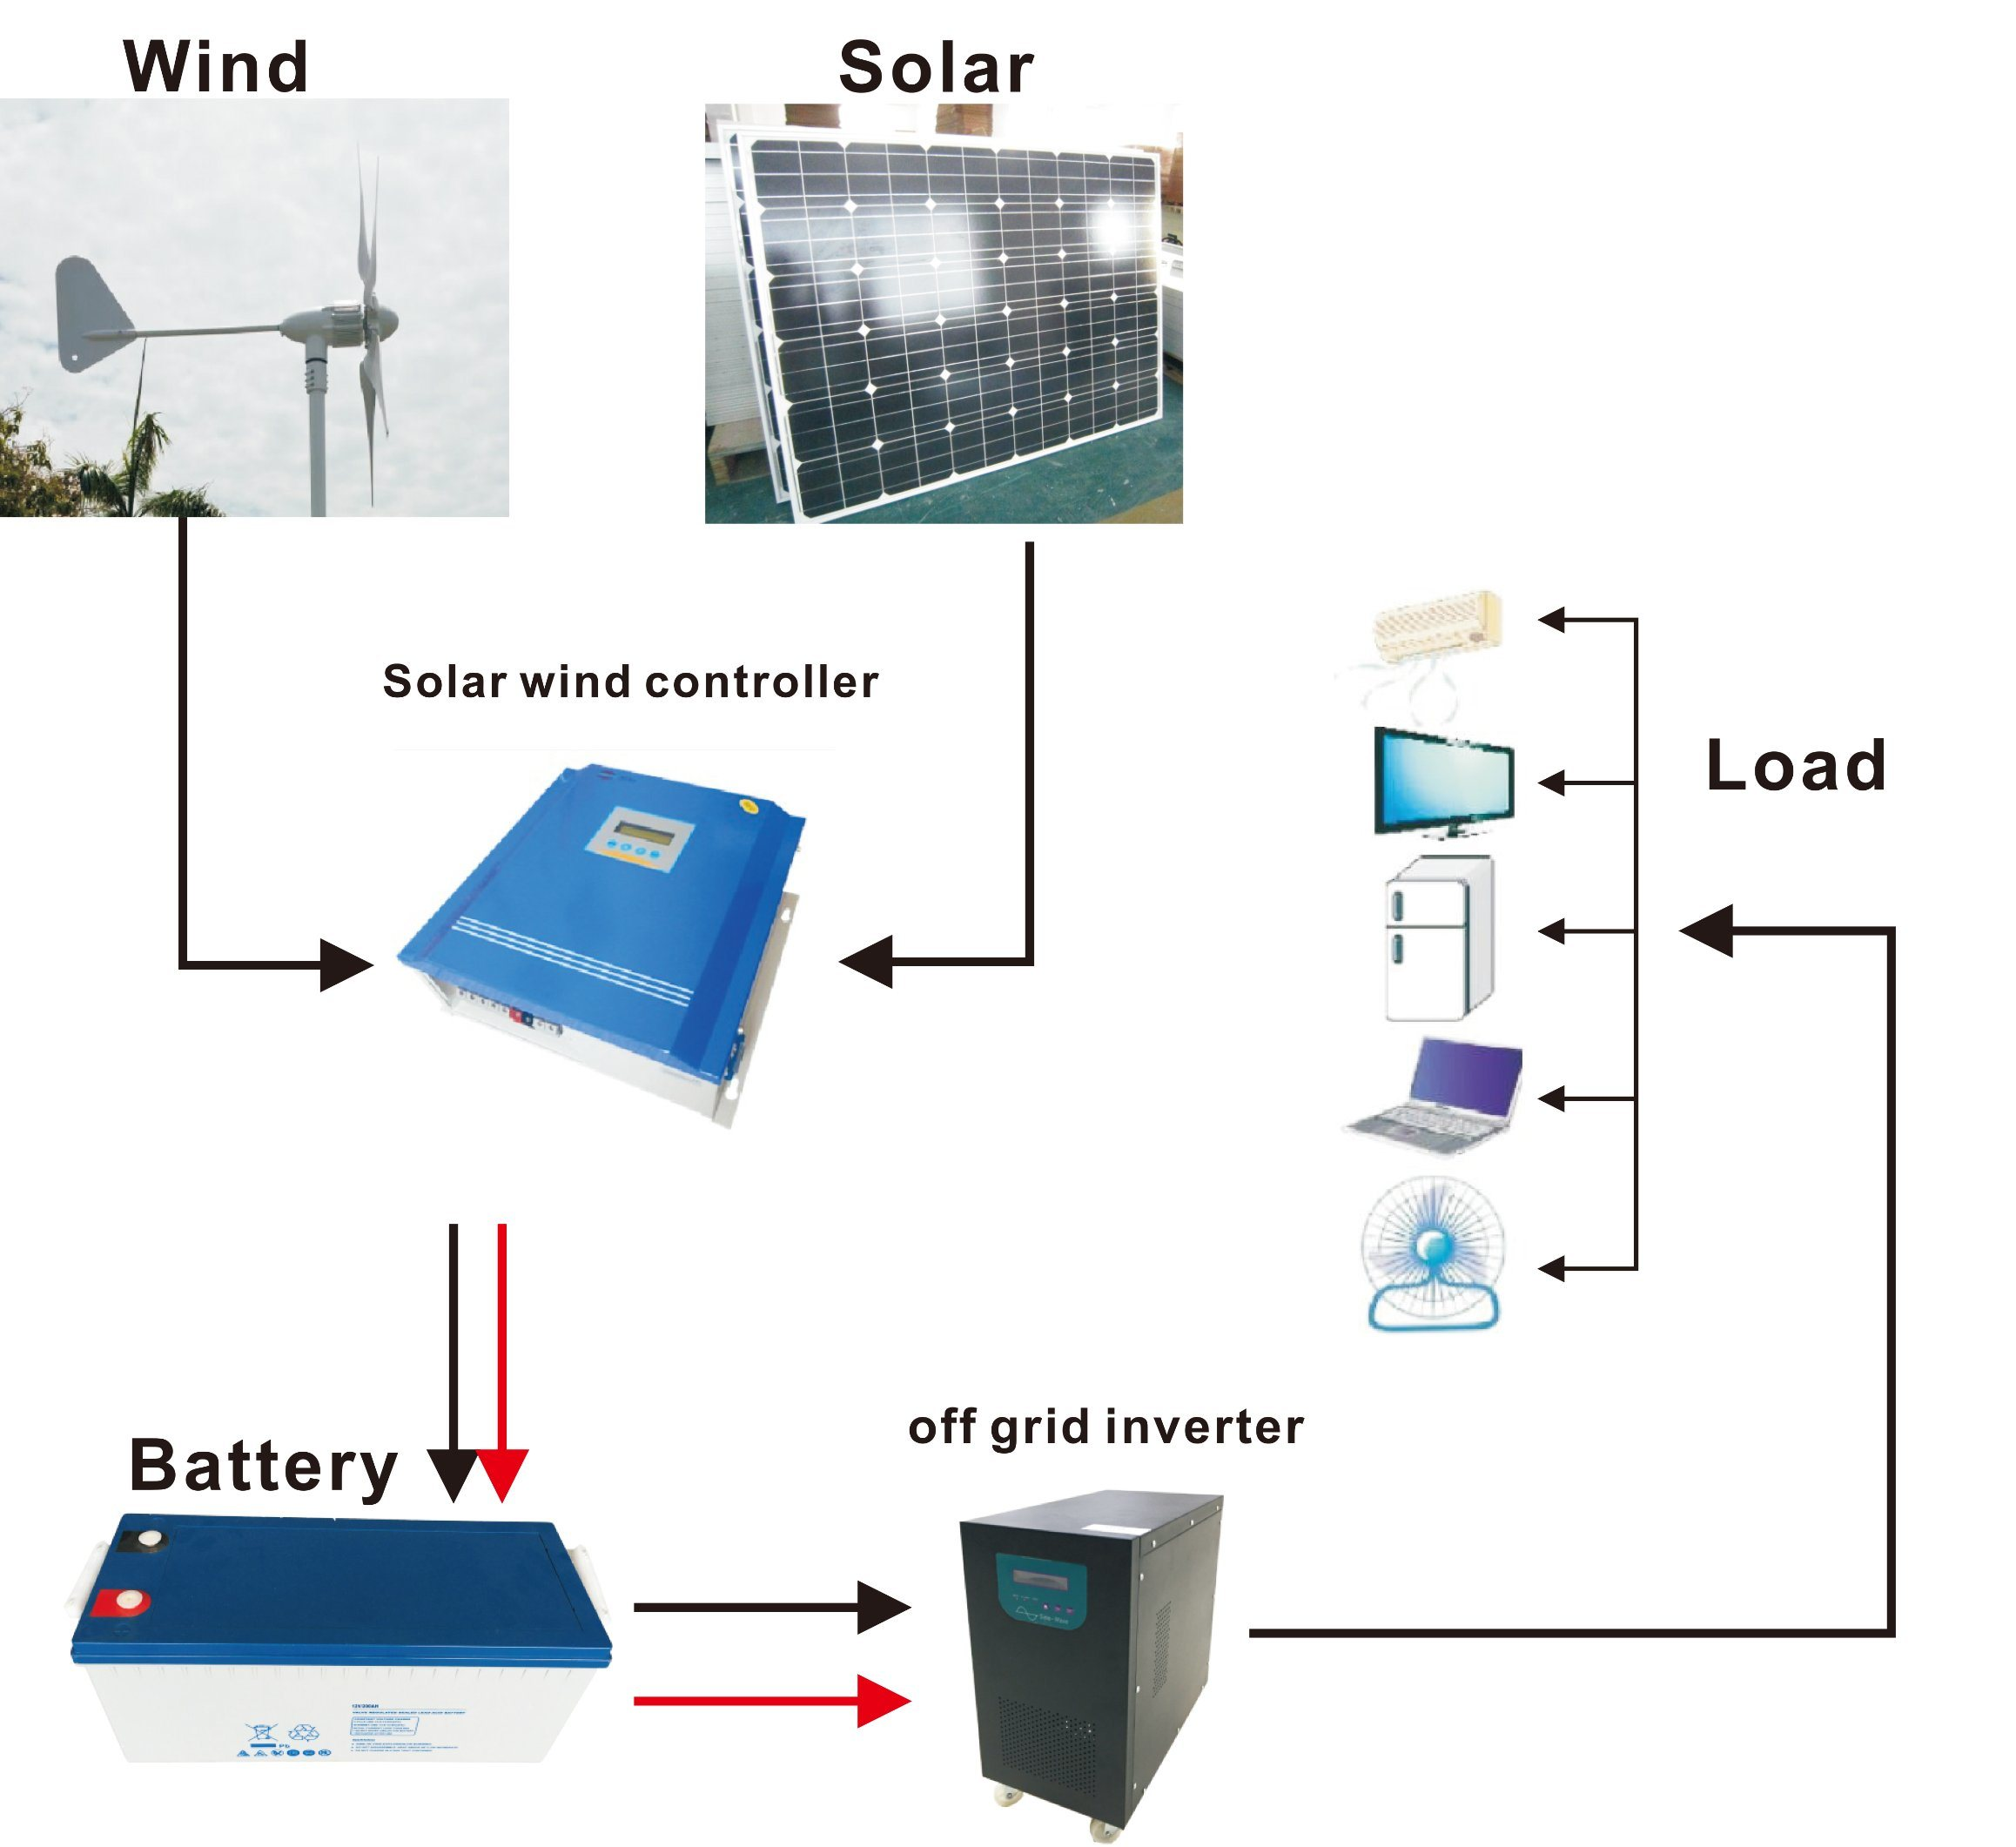 China Wind Soar Hybrid System Solar Generator Complete With Wiring Schematic Together Panel Inverter Circuit Panels Turbine Batteries Wire Etc 1kw 20kw